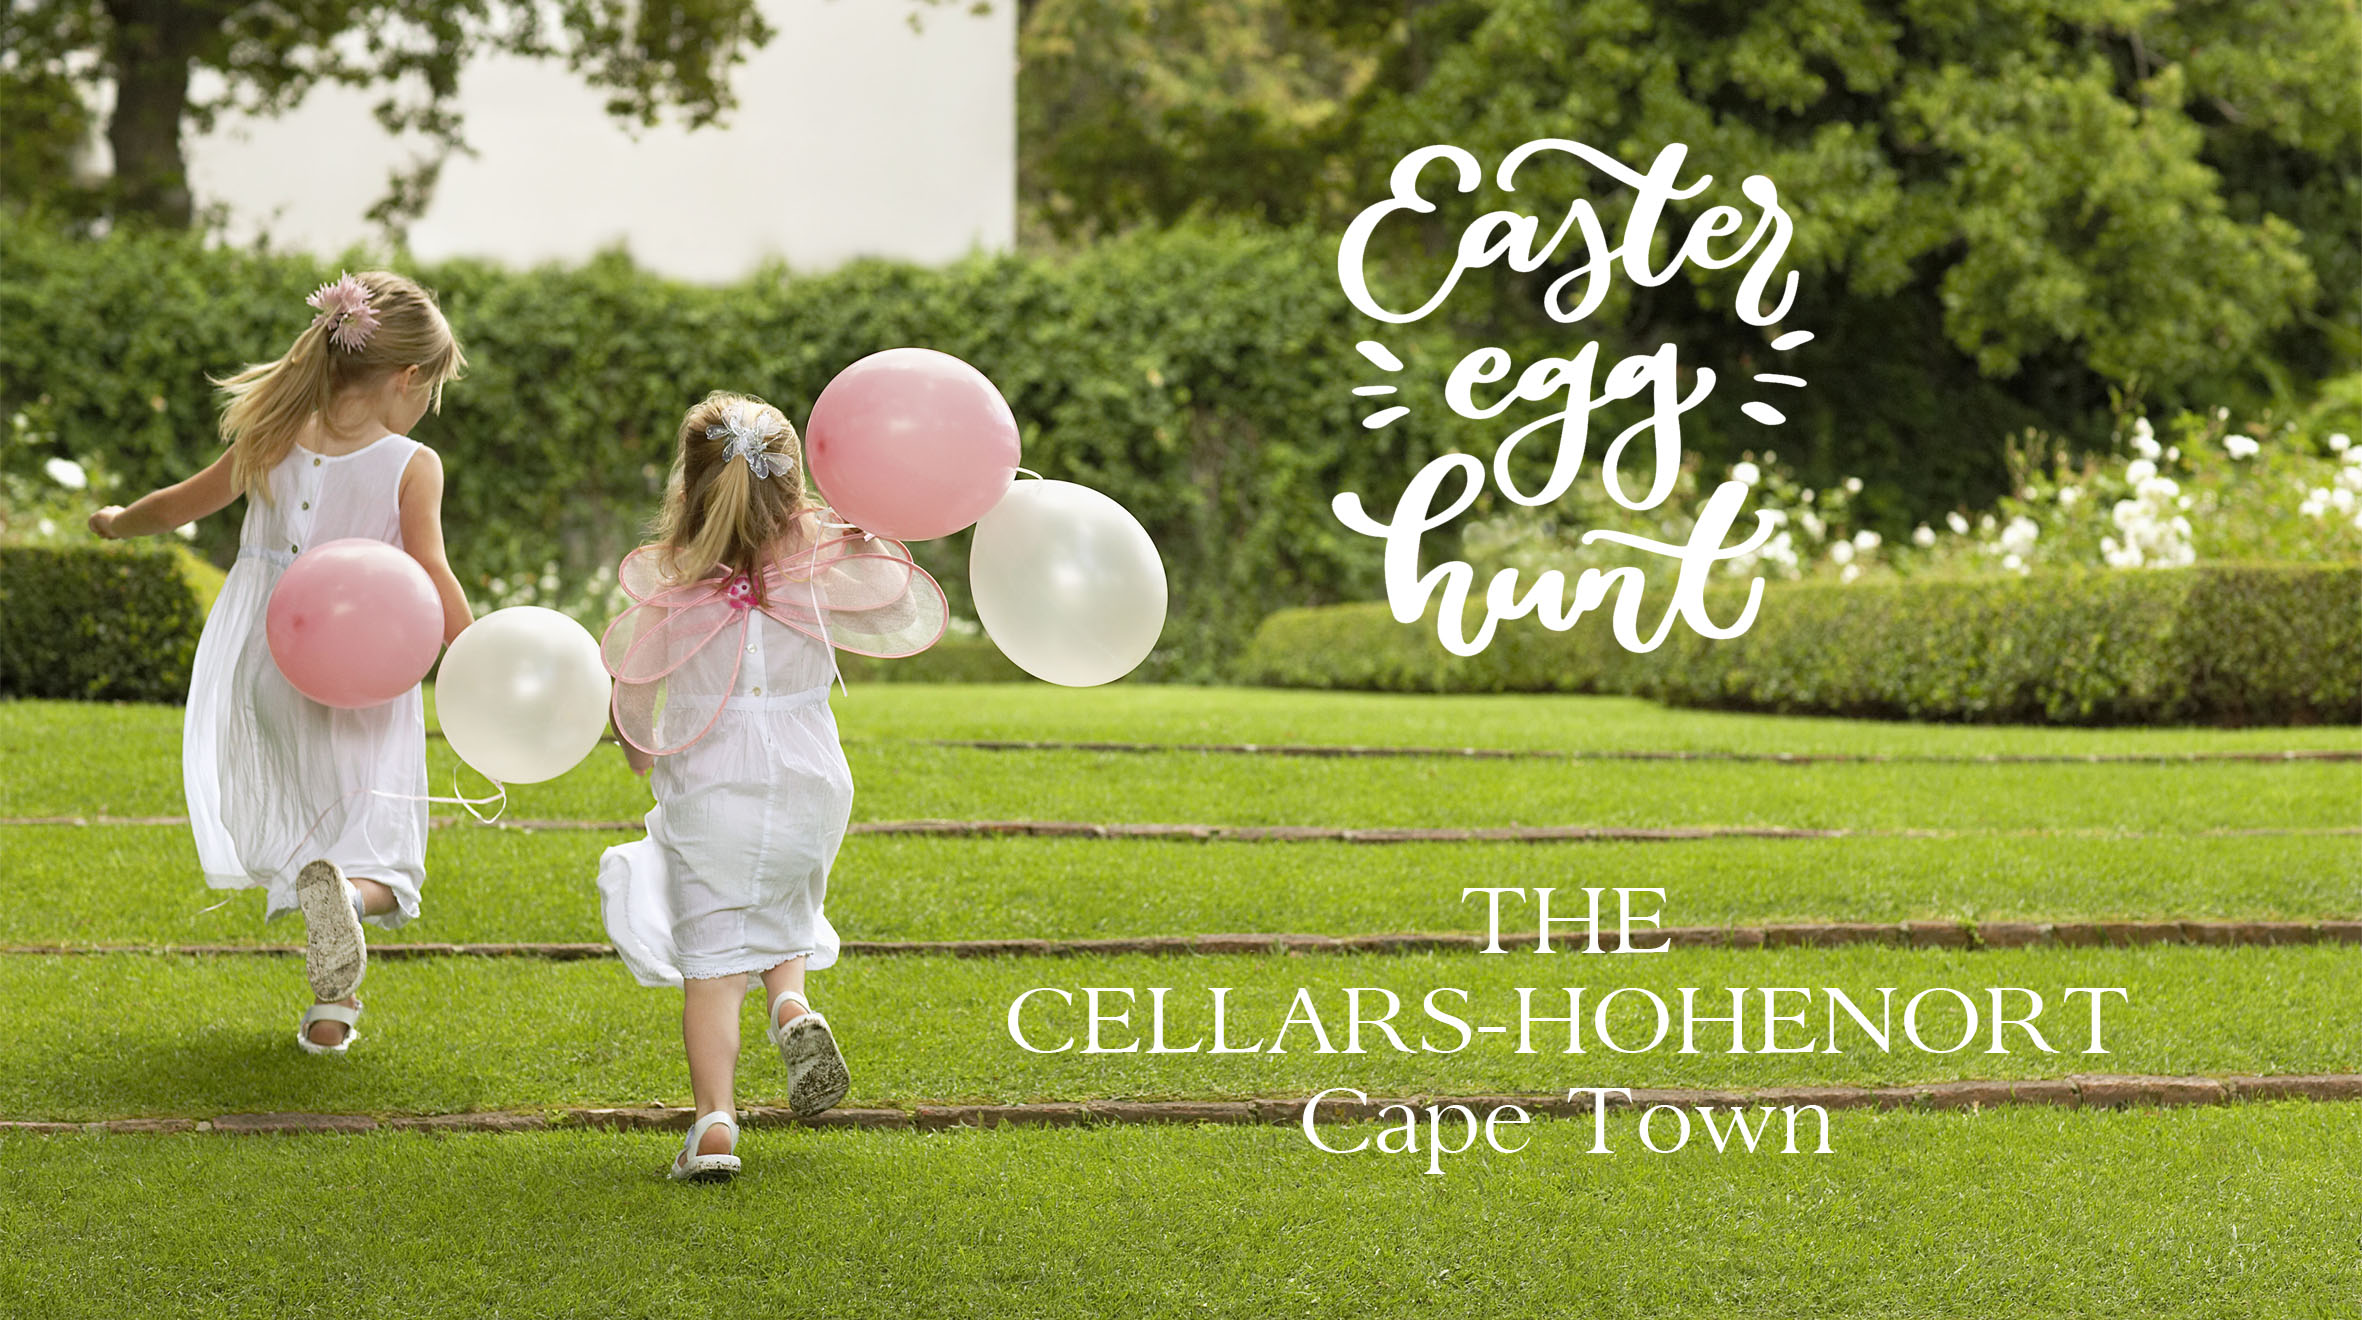 Easter Sunday Feast at The Cellars-Hohenort